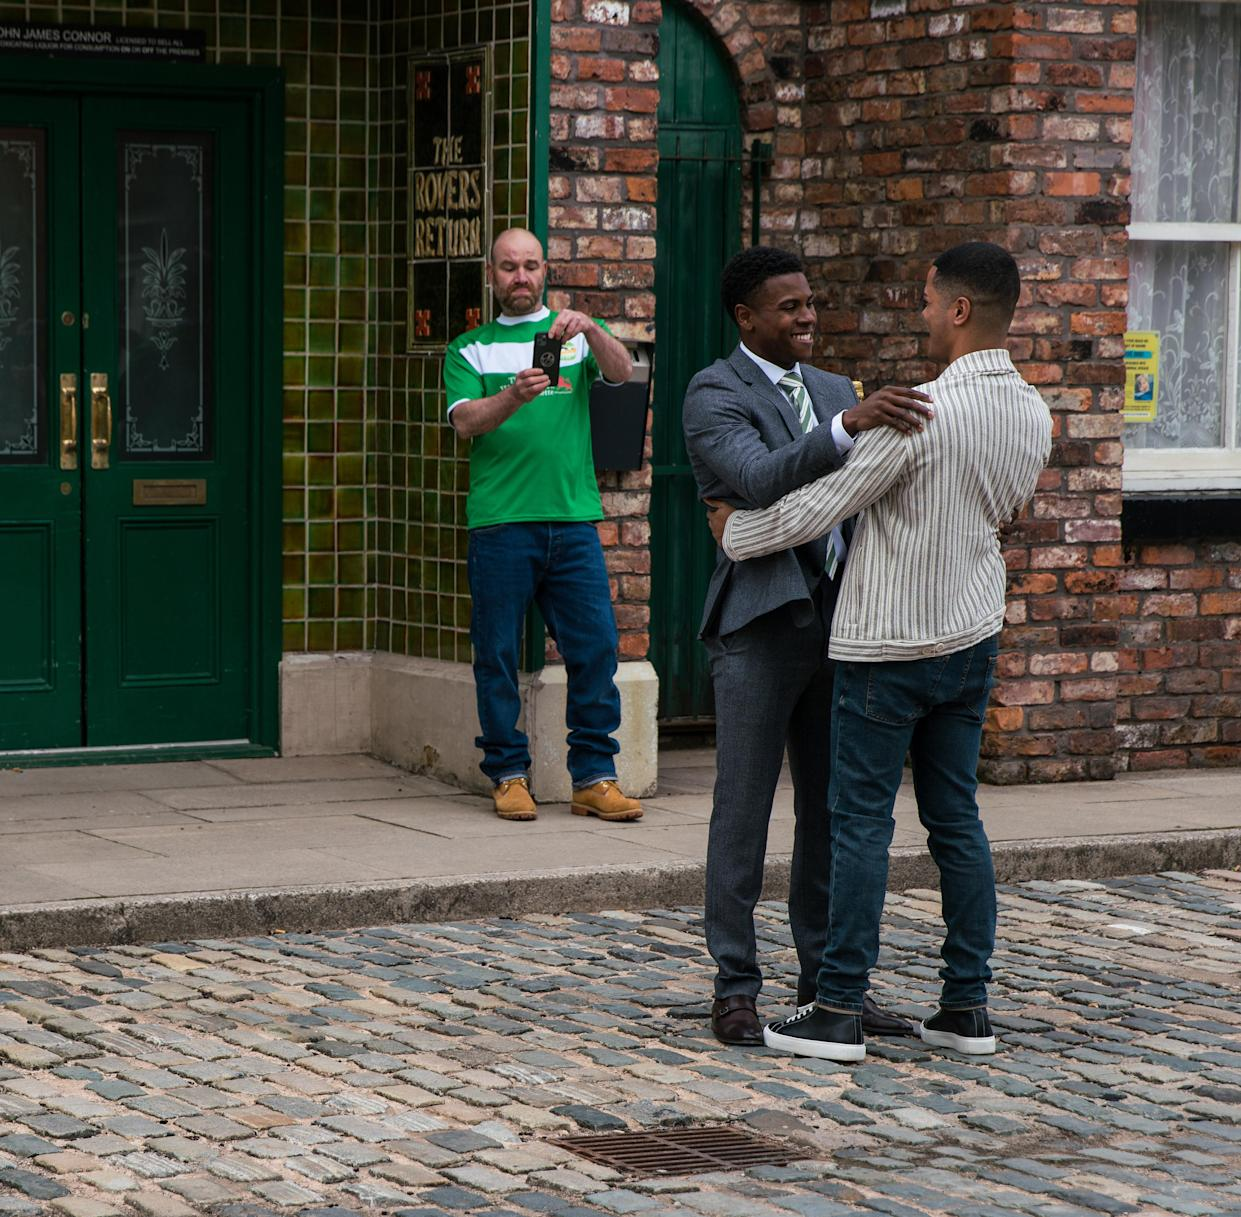 James and Danny kiss outside the Rovers Return (ITV)